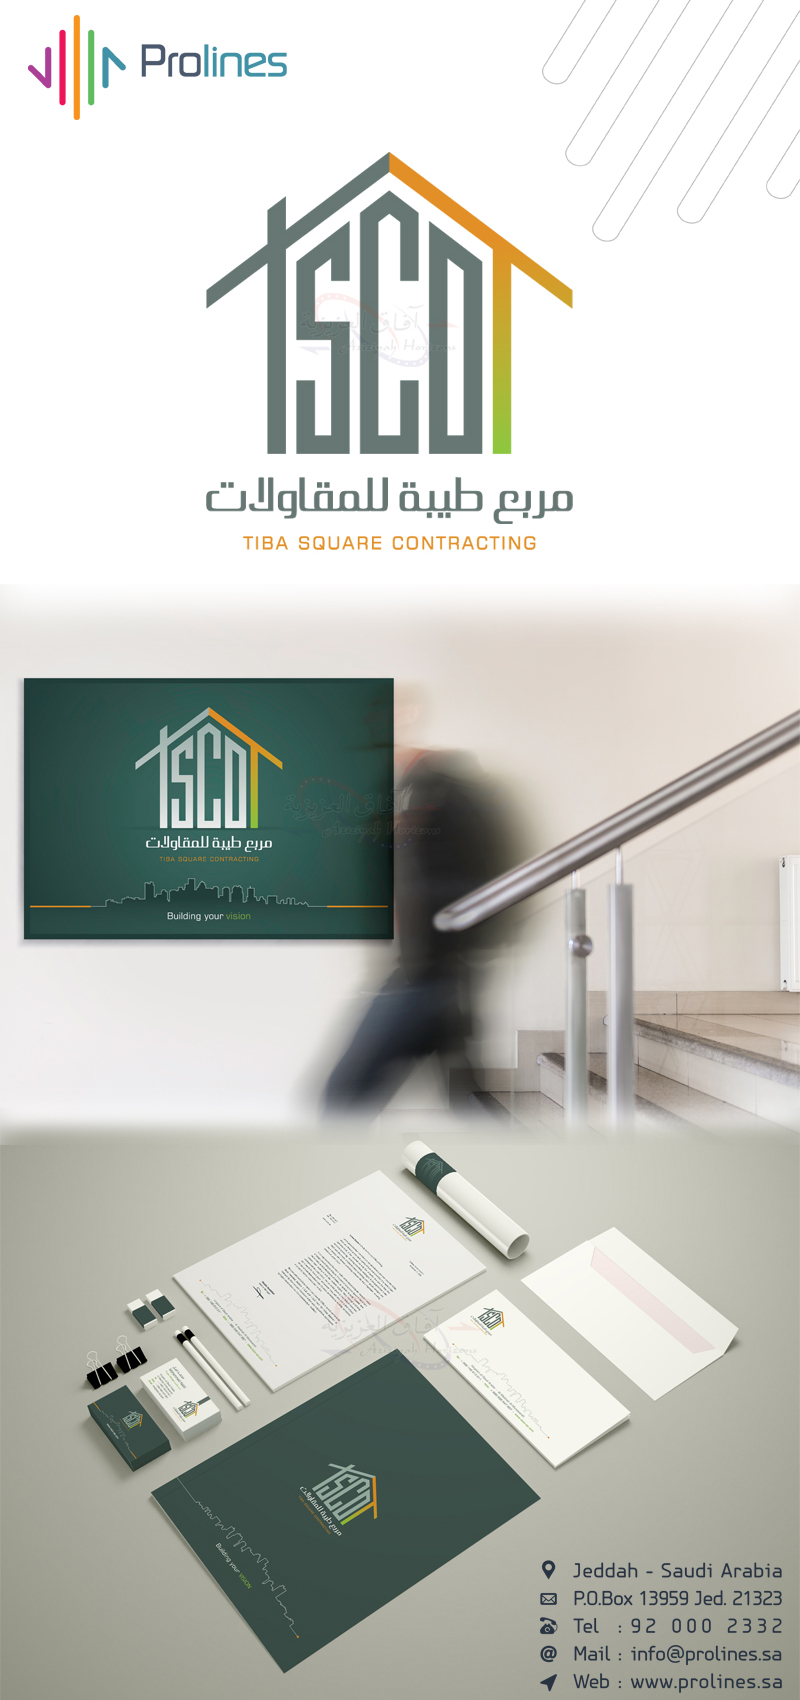 TSCO - Popular Construction Company in Saudi Arabia